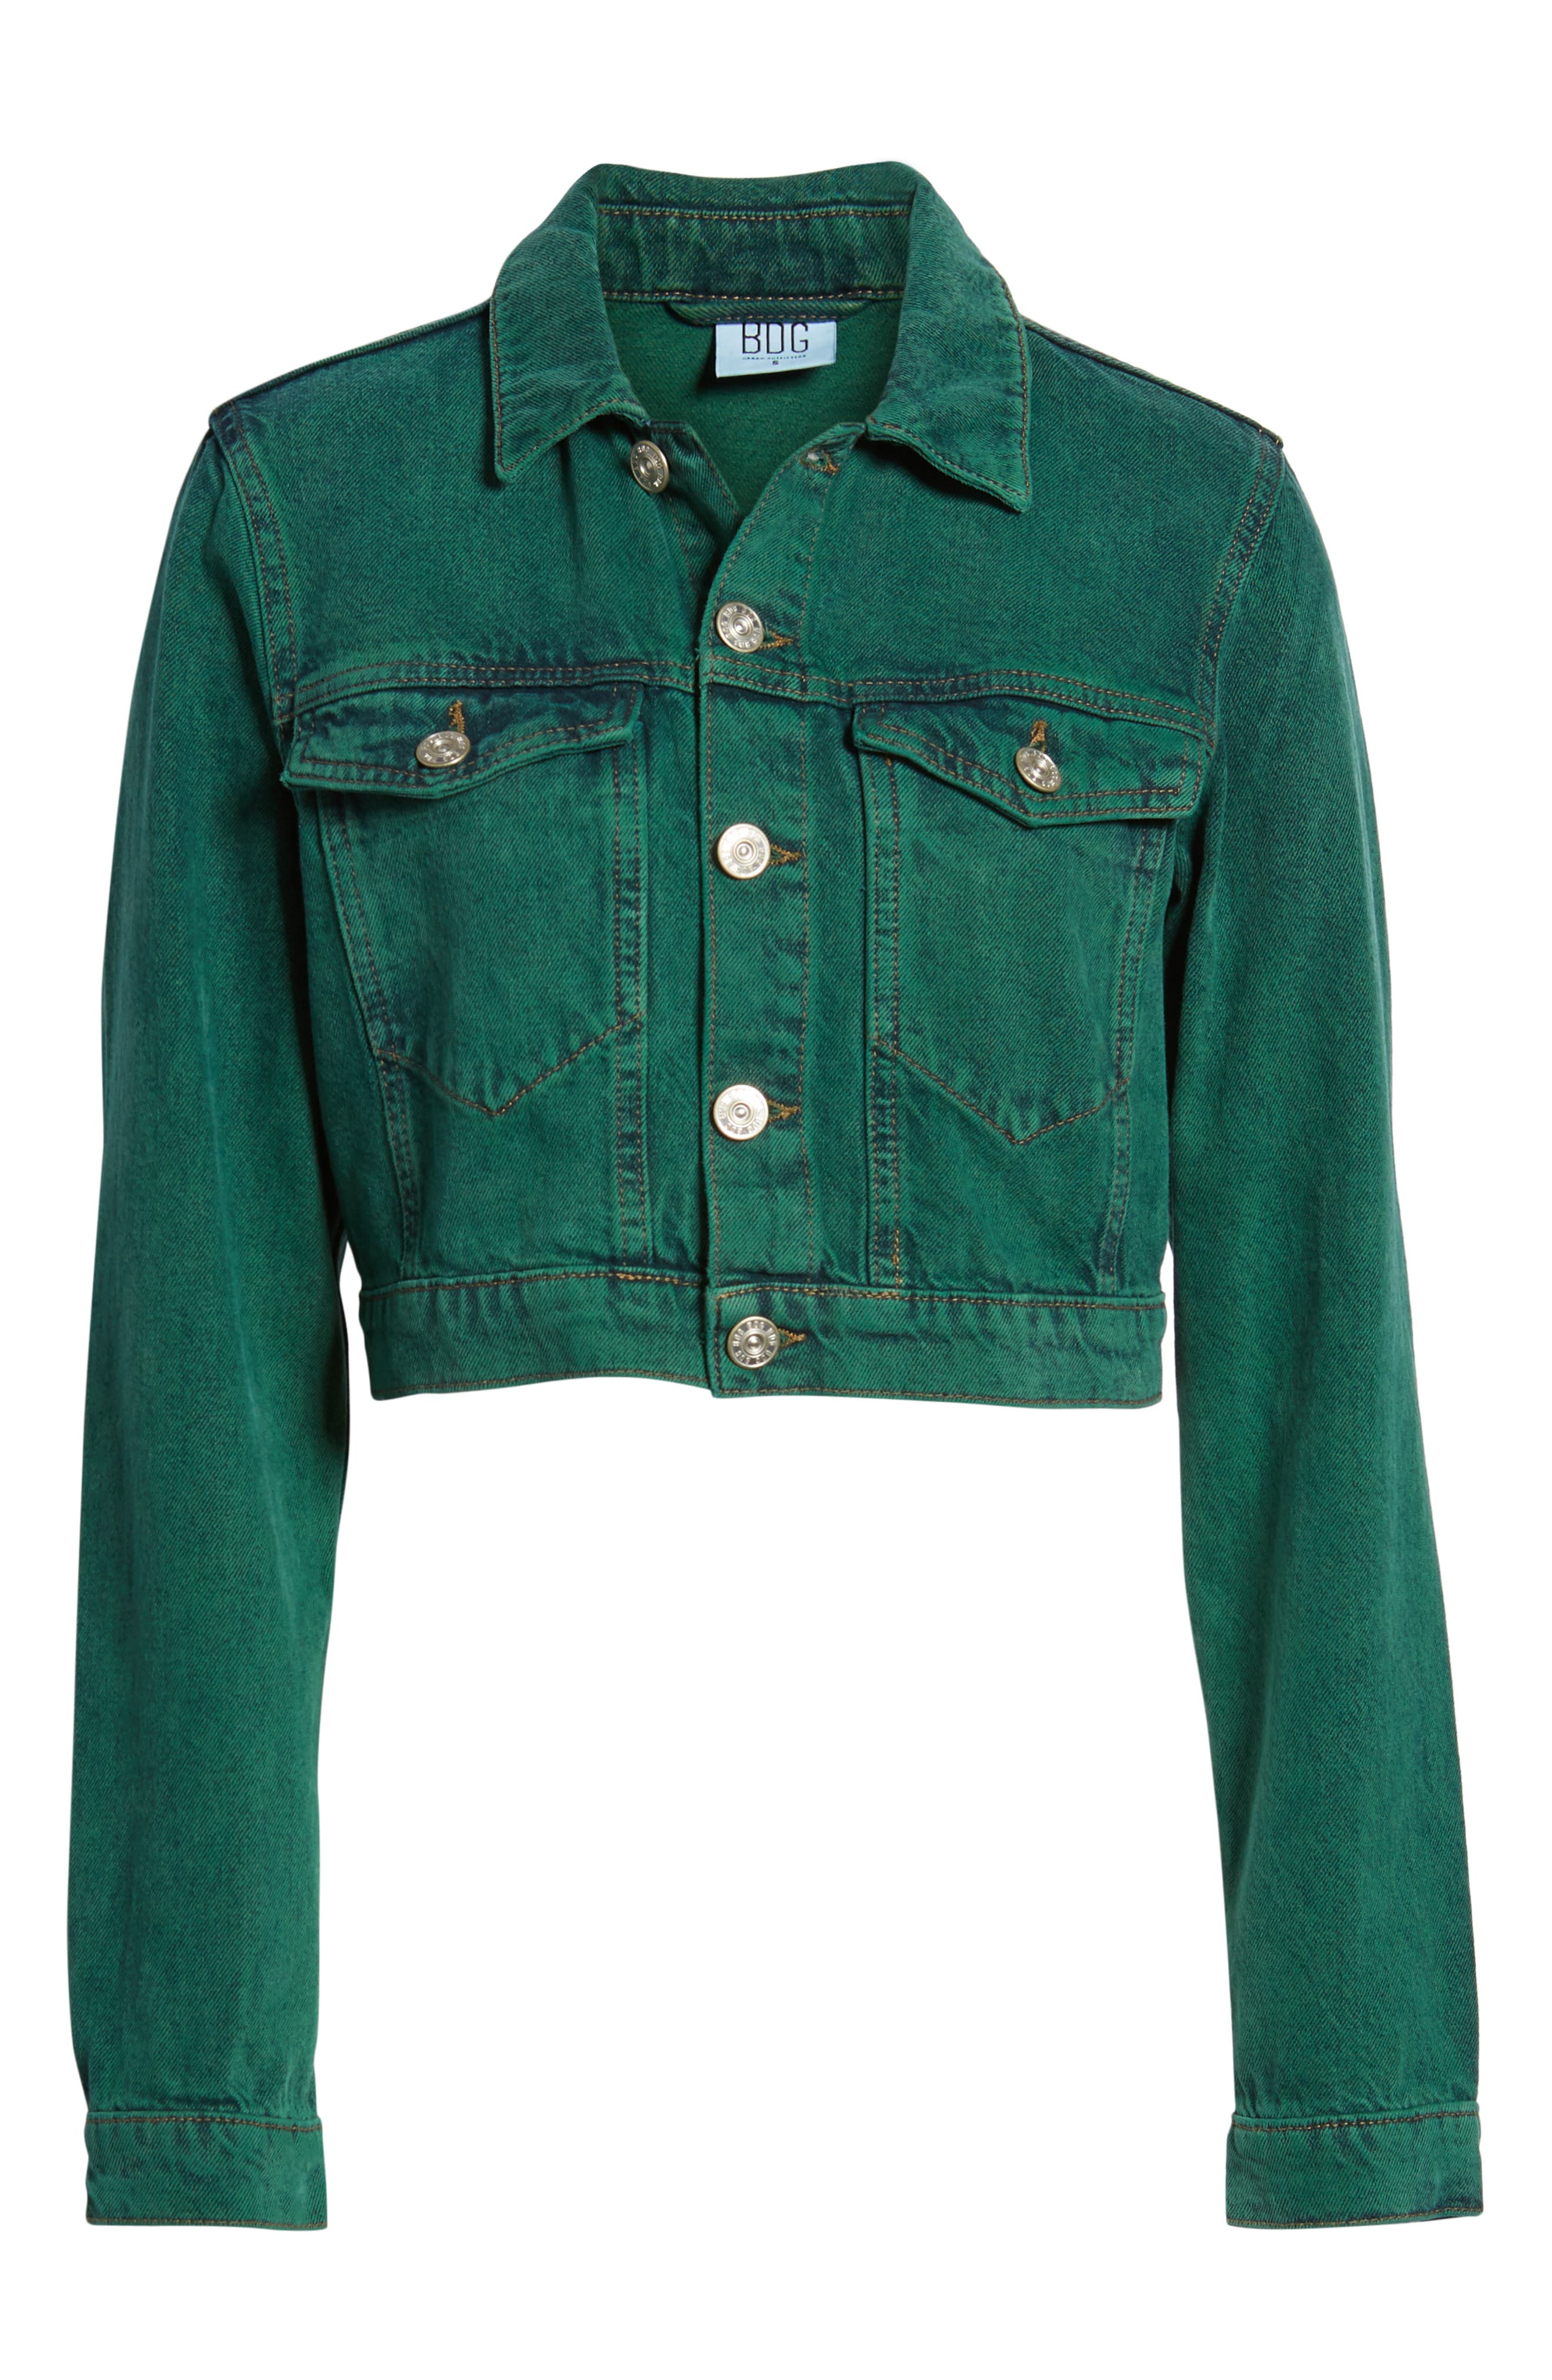 Urban Outfitters Overdyed Crop Denim Jacket,                             Alternate thumbnail 6, color,                             300